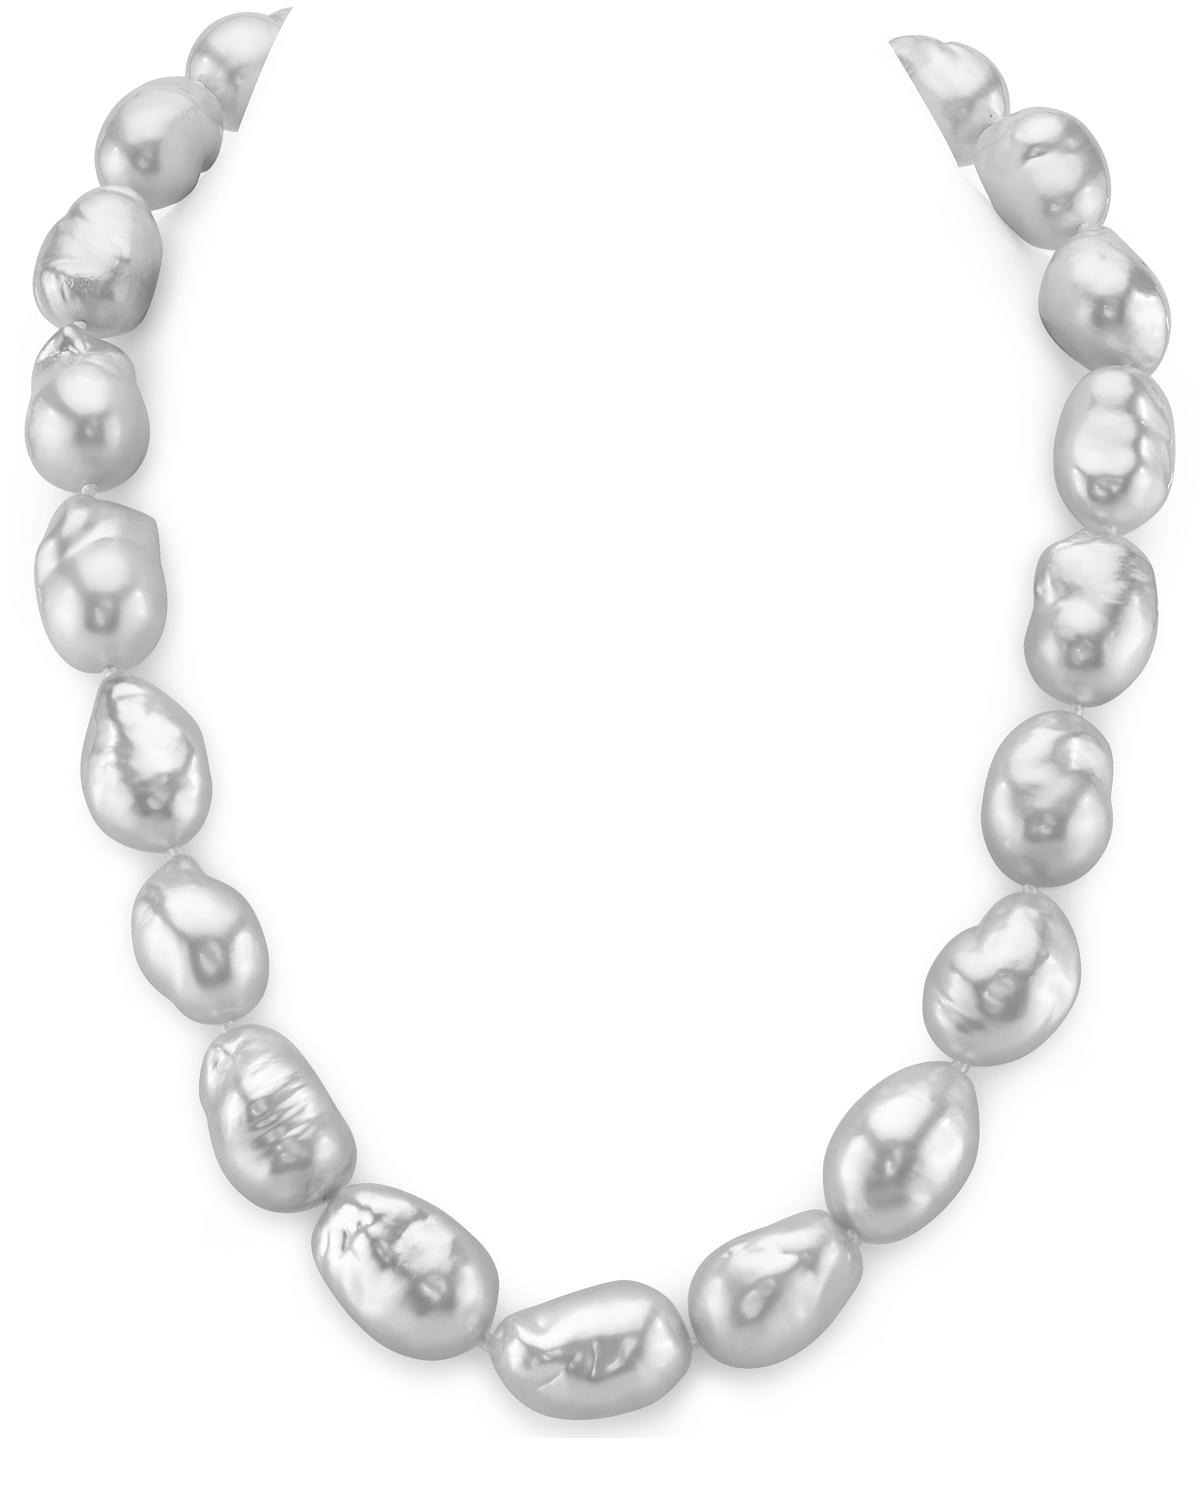 14-15mm White South Sea Baroque Pearl Necklace